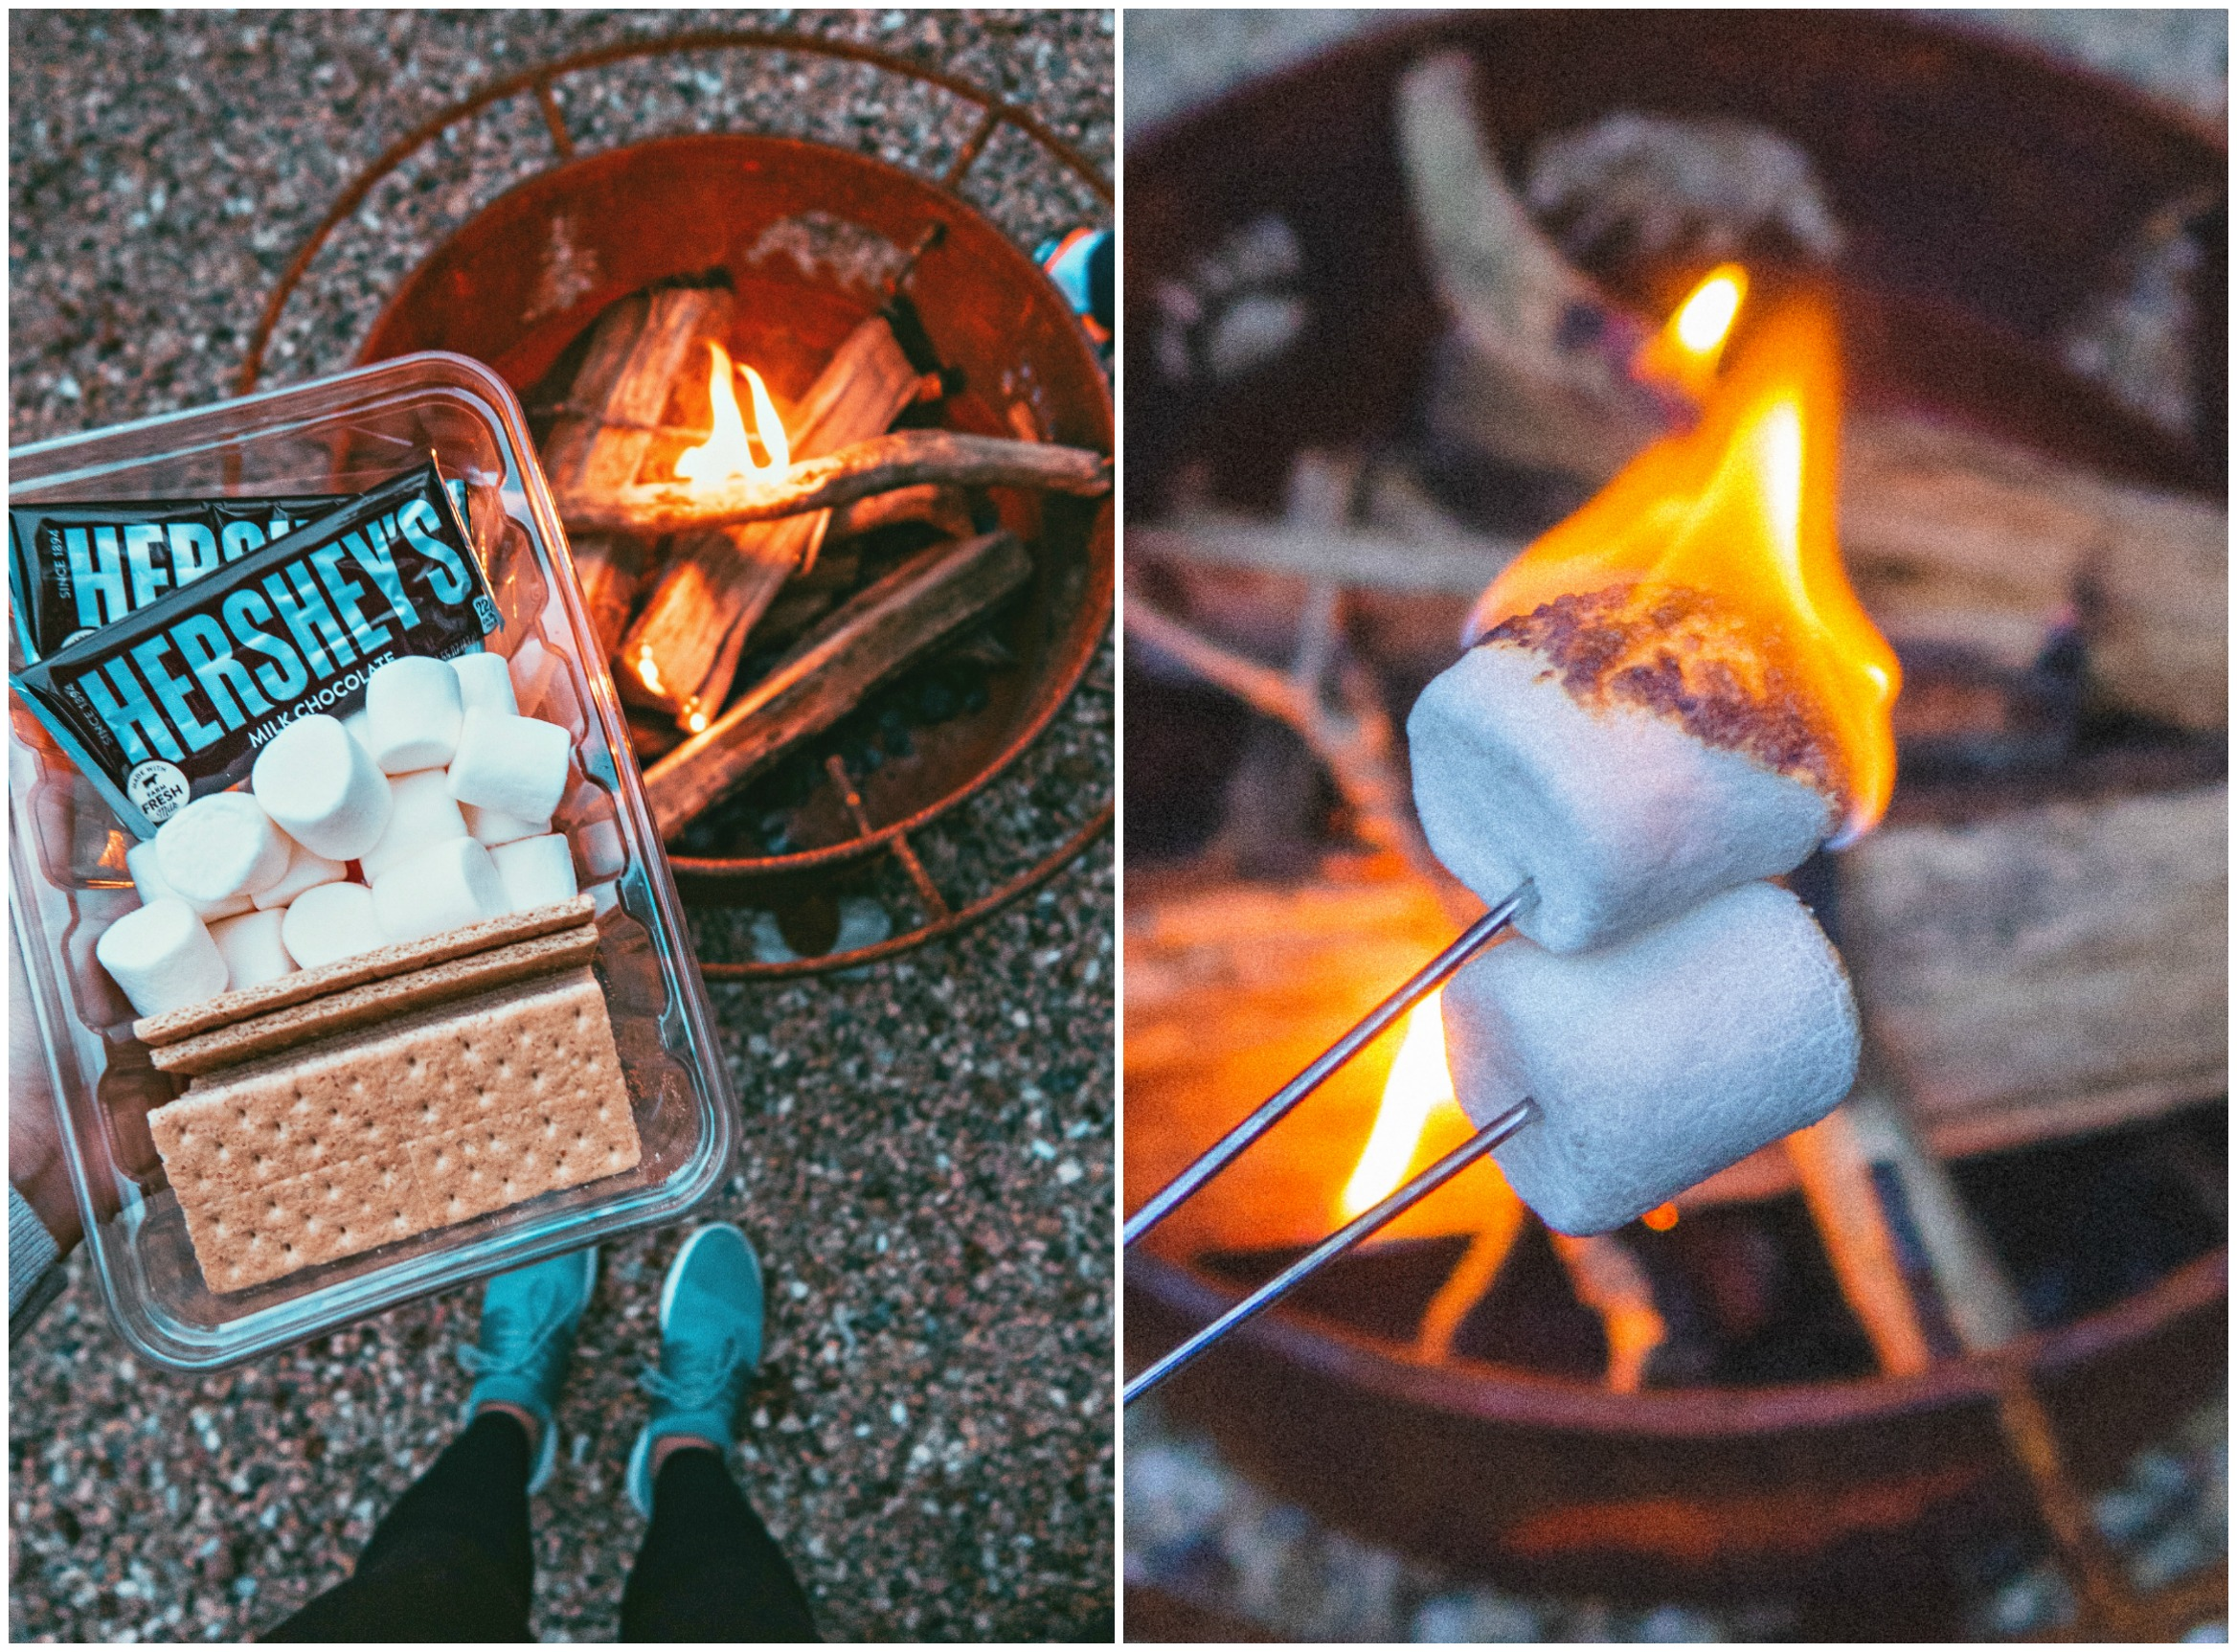 couples hiking, dogs, ruffwear, lake, mountain trip, hike, camp, fishing, Patagonia, back country, hiking boots, roasting marshmallows, s'mores, bon fire